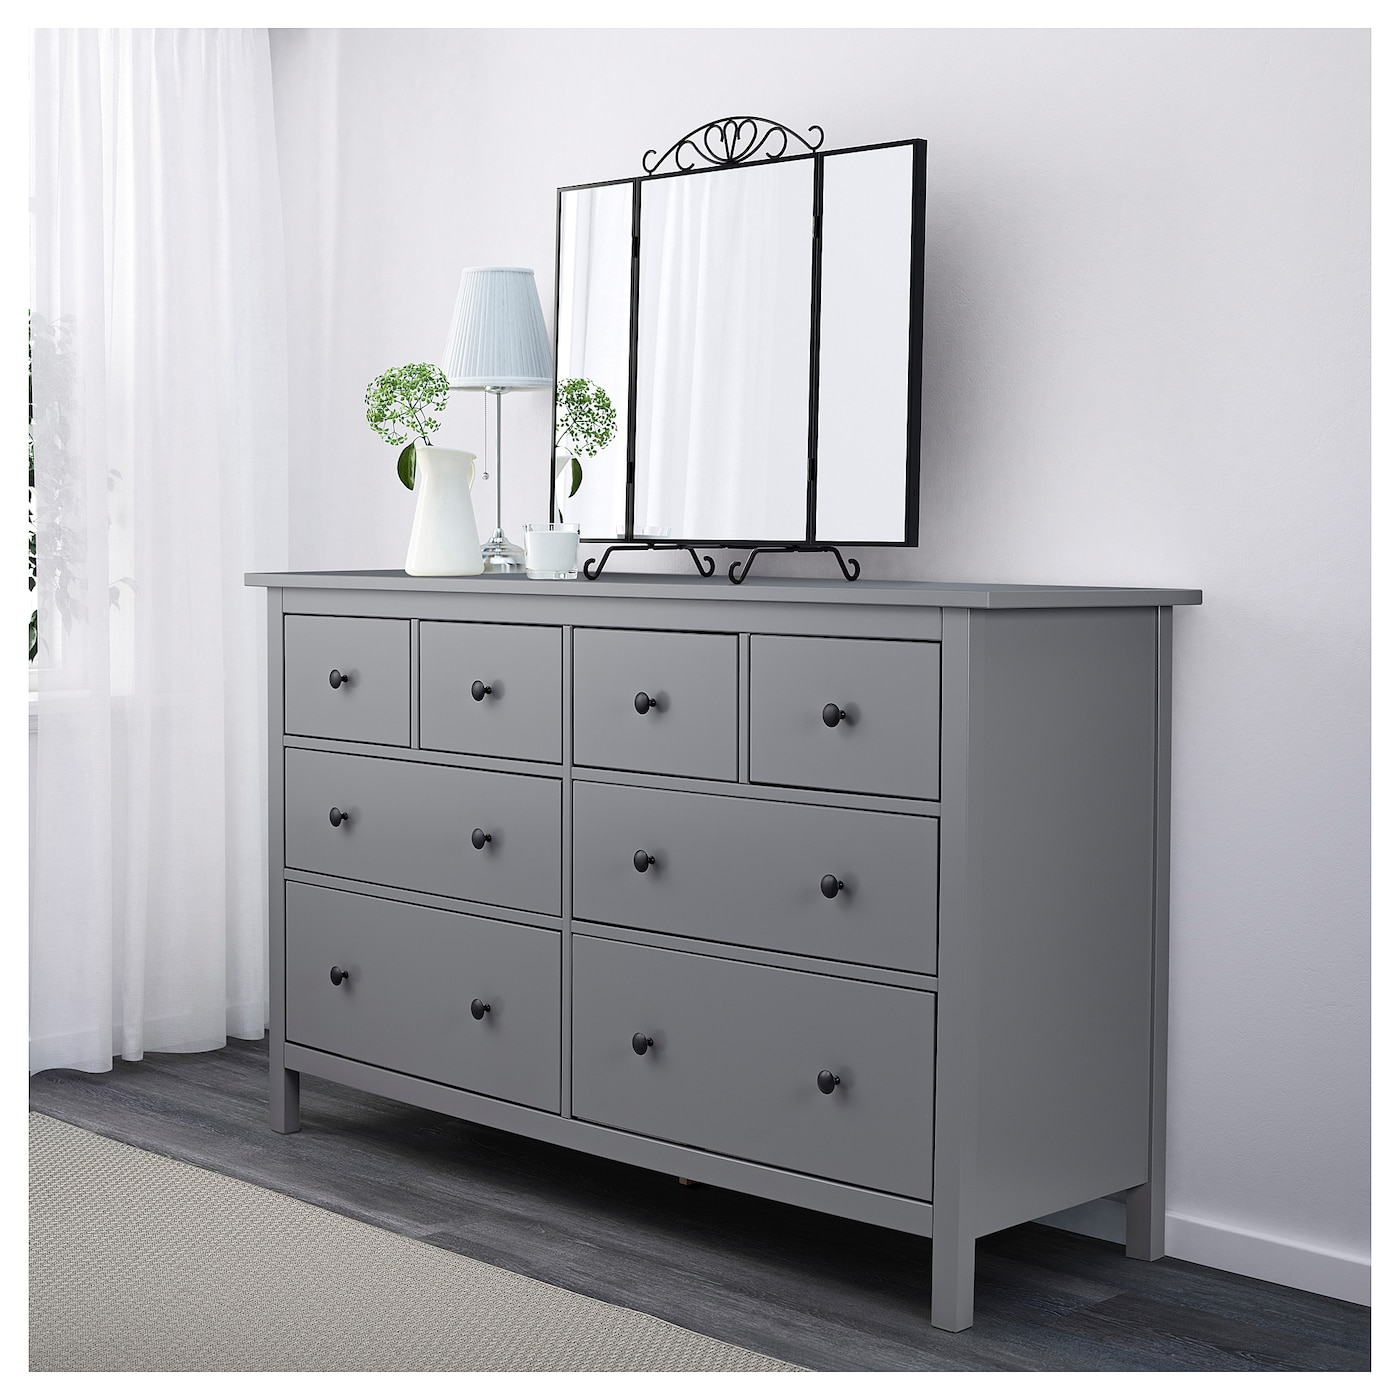 Ikea Hemnes Chest Of 8 Drawers Smooth Running With Pull Out Stop